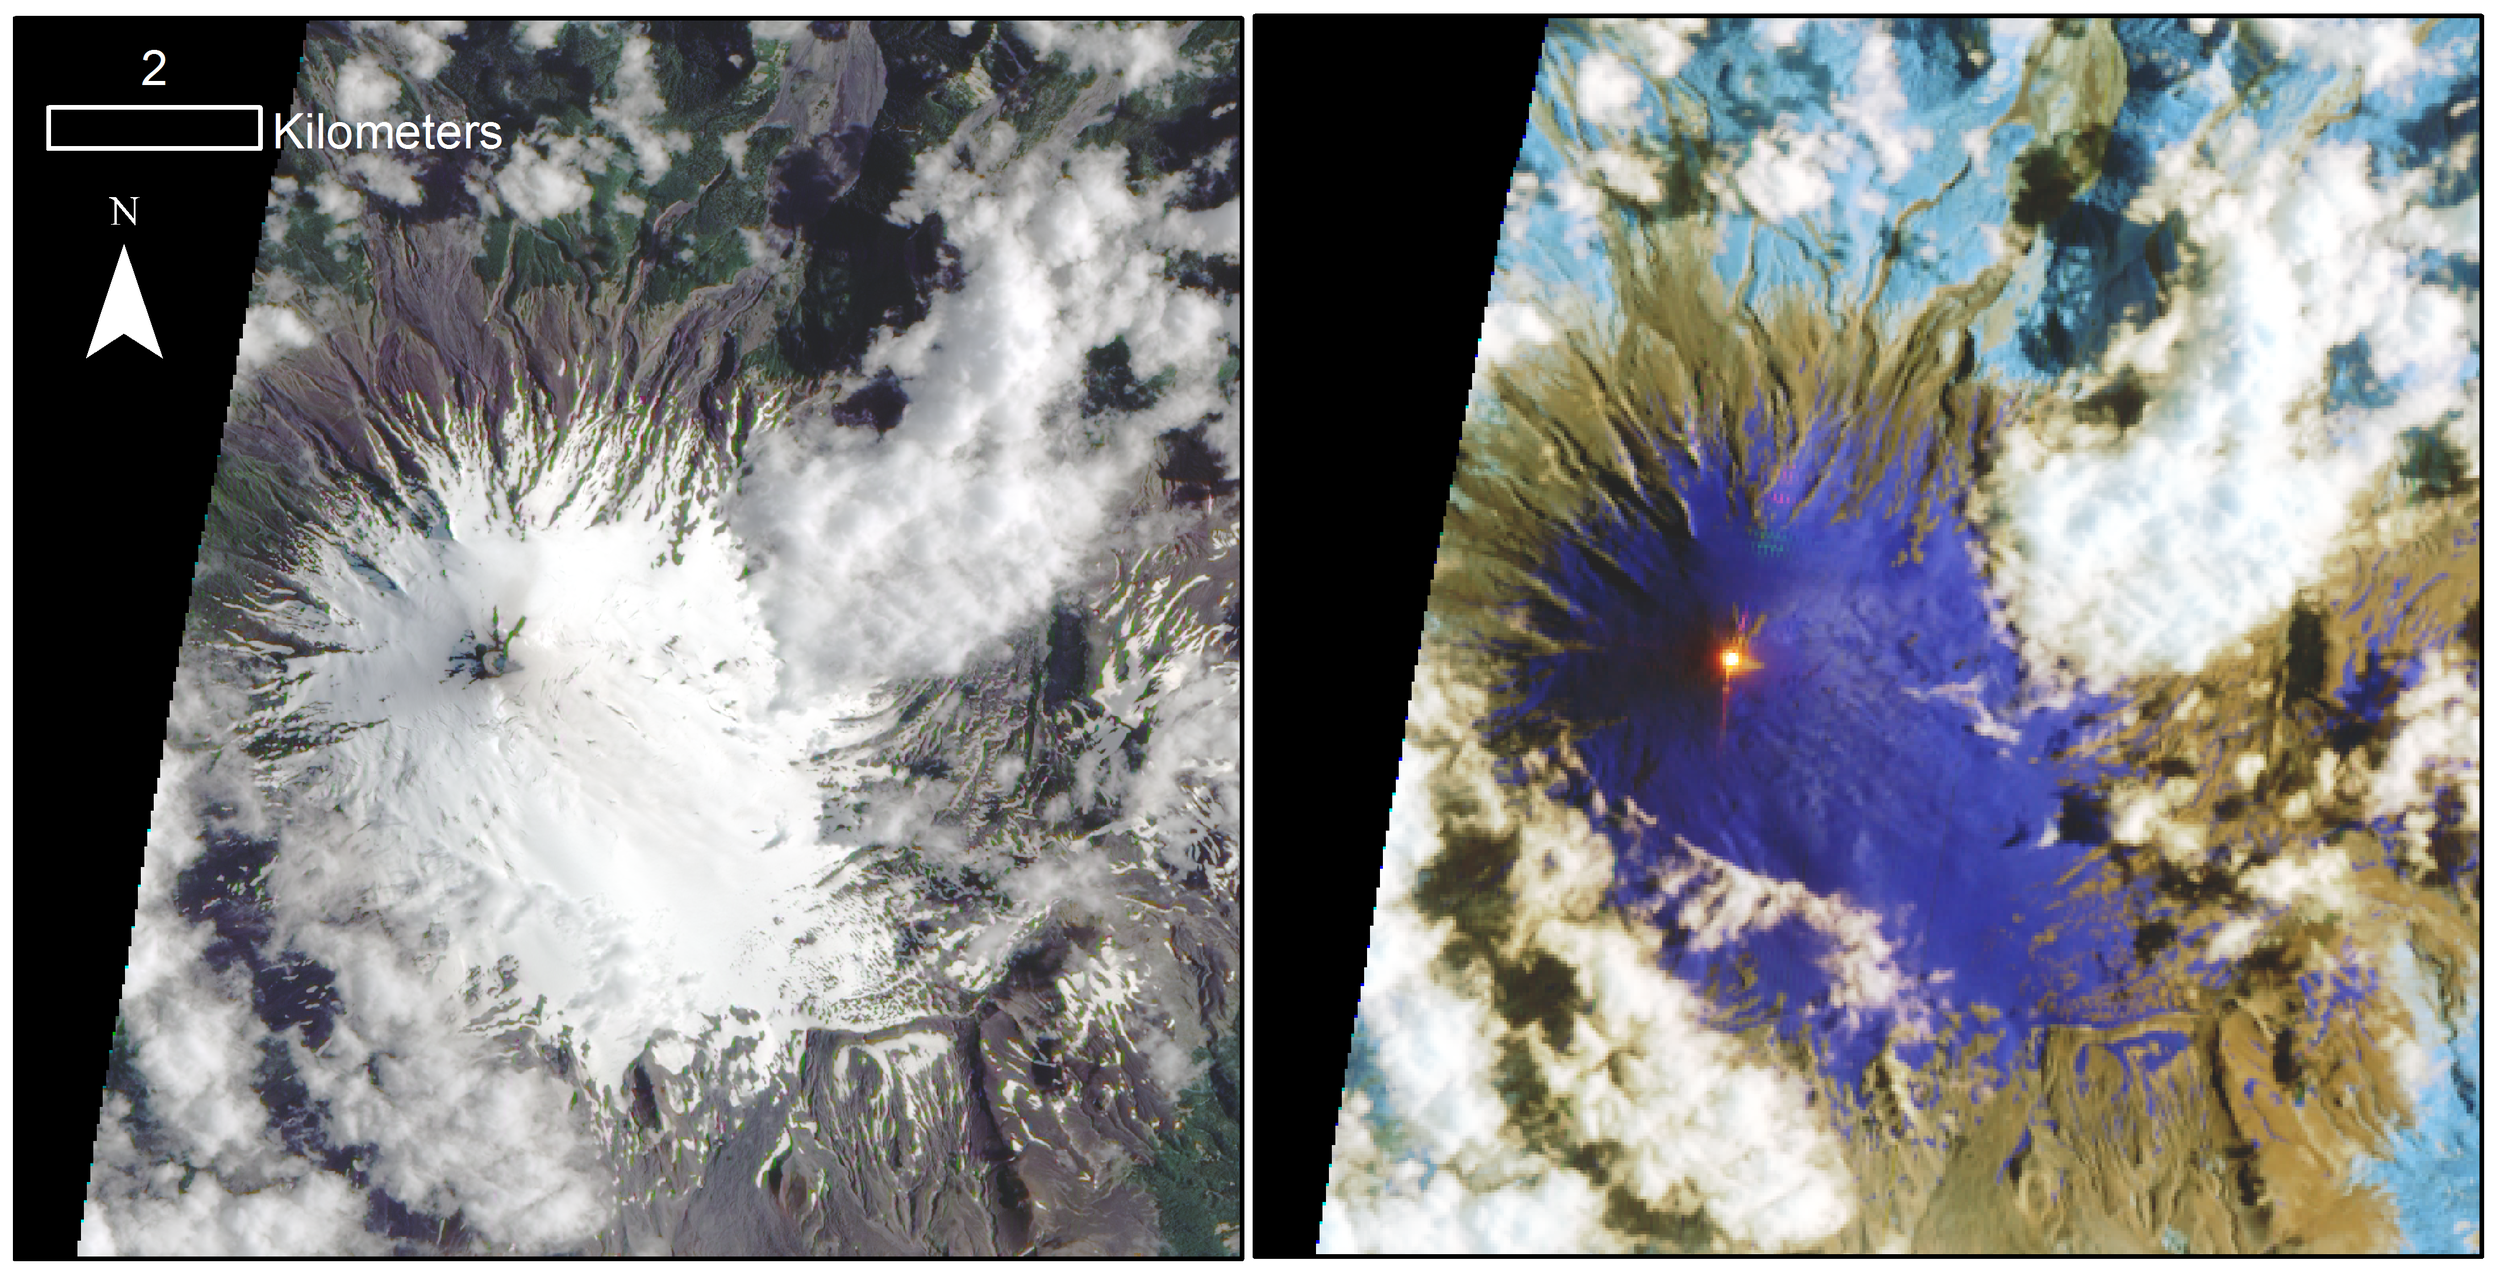 EO-1 image acquires on the 16th Januray 2016. The Earth Observing-1 (EO-1) spacecraft is managed by NASA's Goddard Space Flight Center, Greenbelt, Maryland. EO-1 is the satellite remote-sensing asset used by the  EO-1 Volcano Sensor Web (VSW) , developed by NASA's Jet Propulsion Laboratory, Pasadena, California, which is being used to monitor volcanic eruptions around the world.